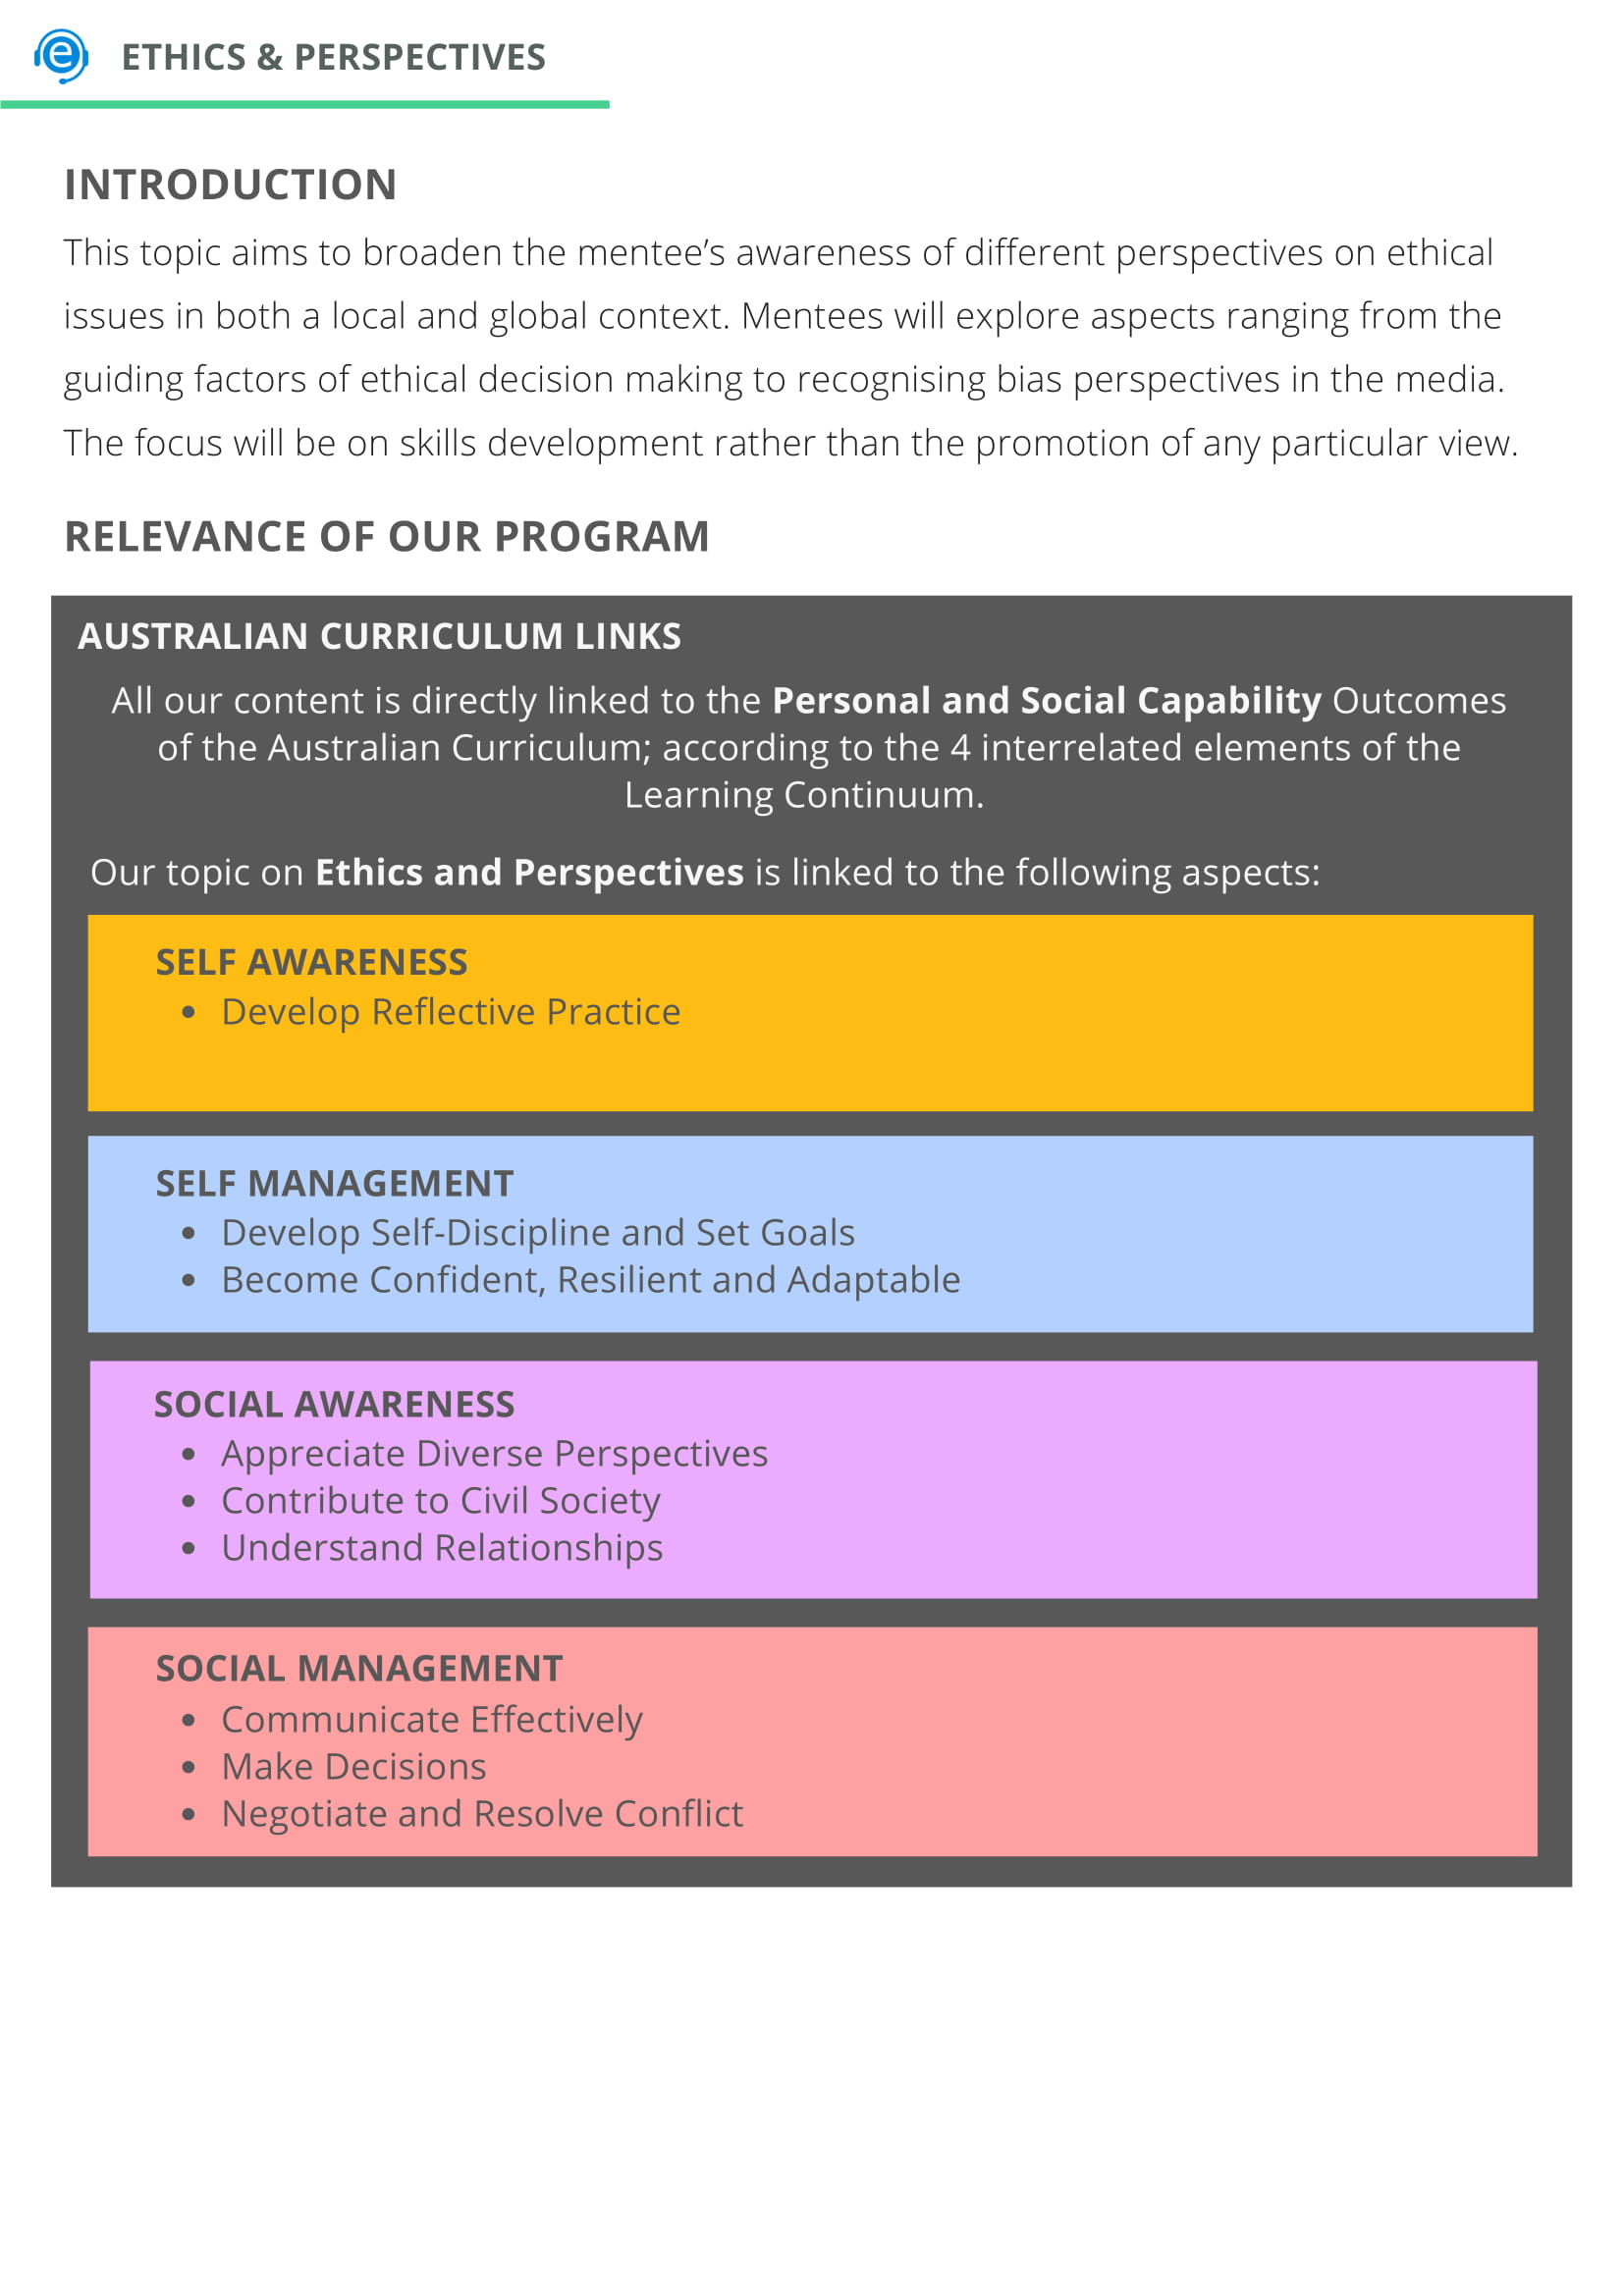 eMentor - Ethics and Perspectives-02.jpg